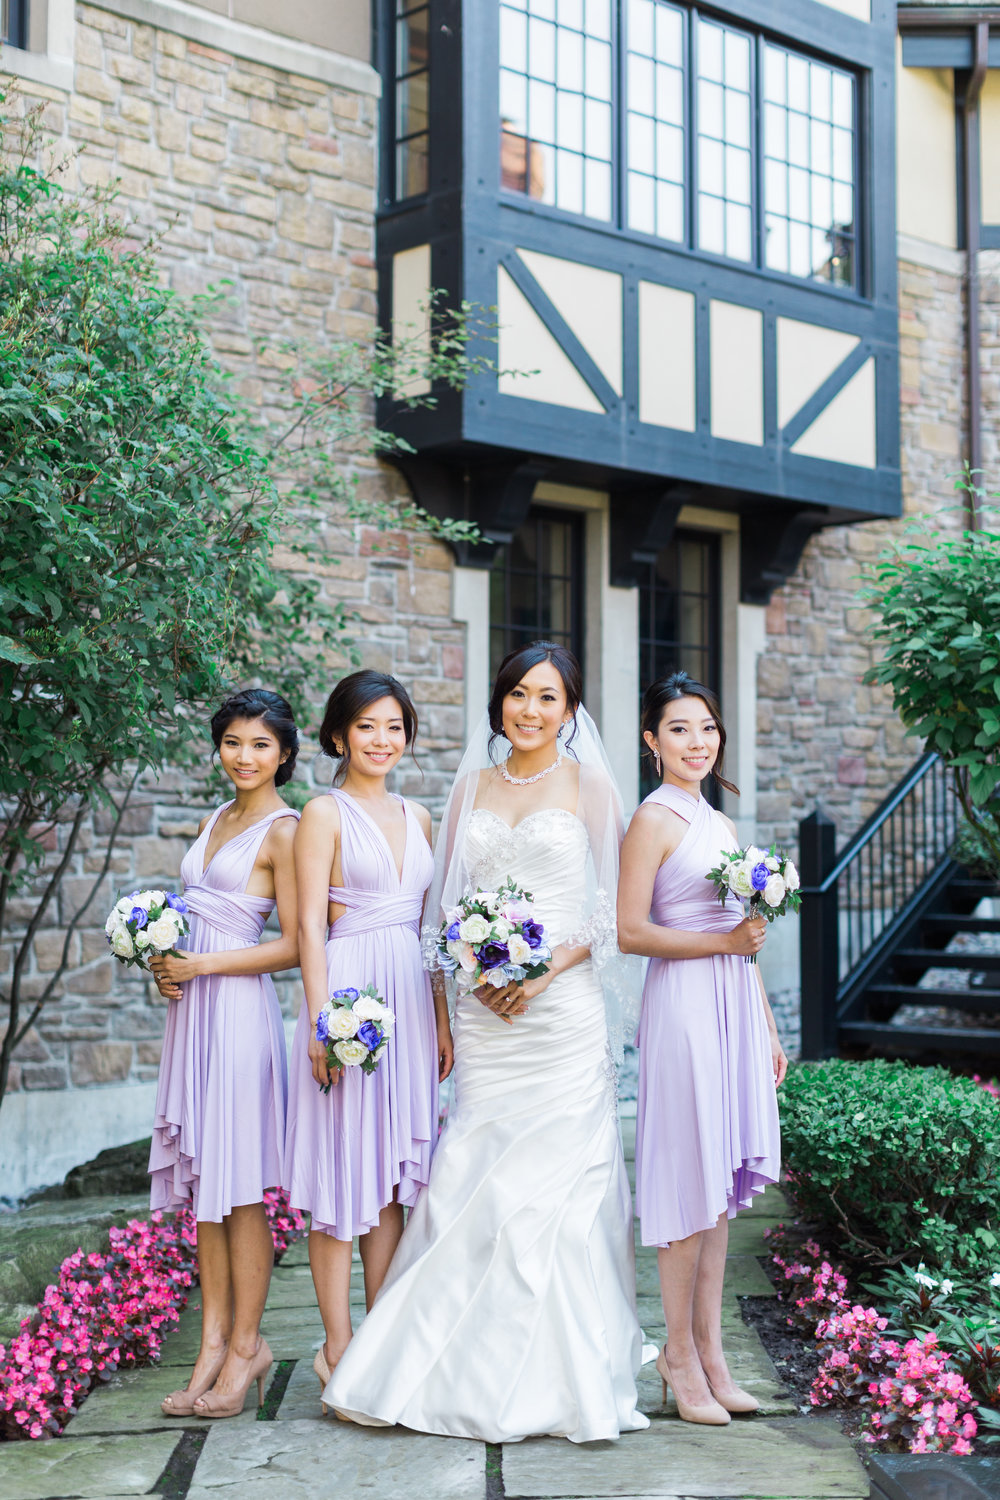 Toronto Fine Art Photographer - Old Mill Wedding - Bridesmaids Photos-2.jpg